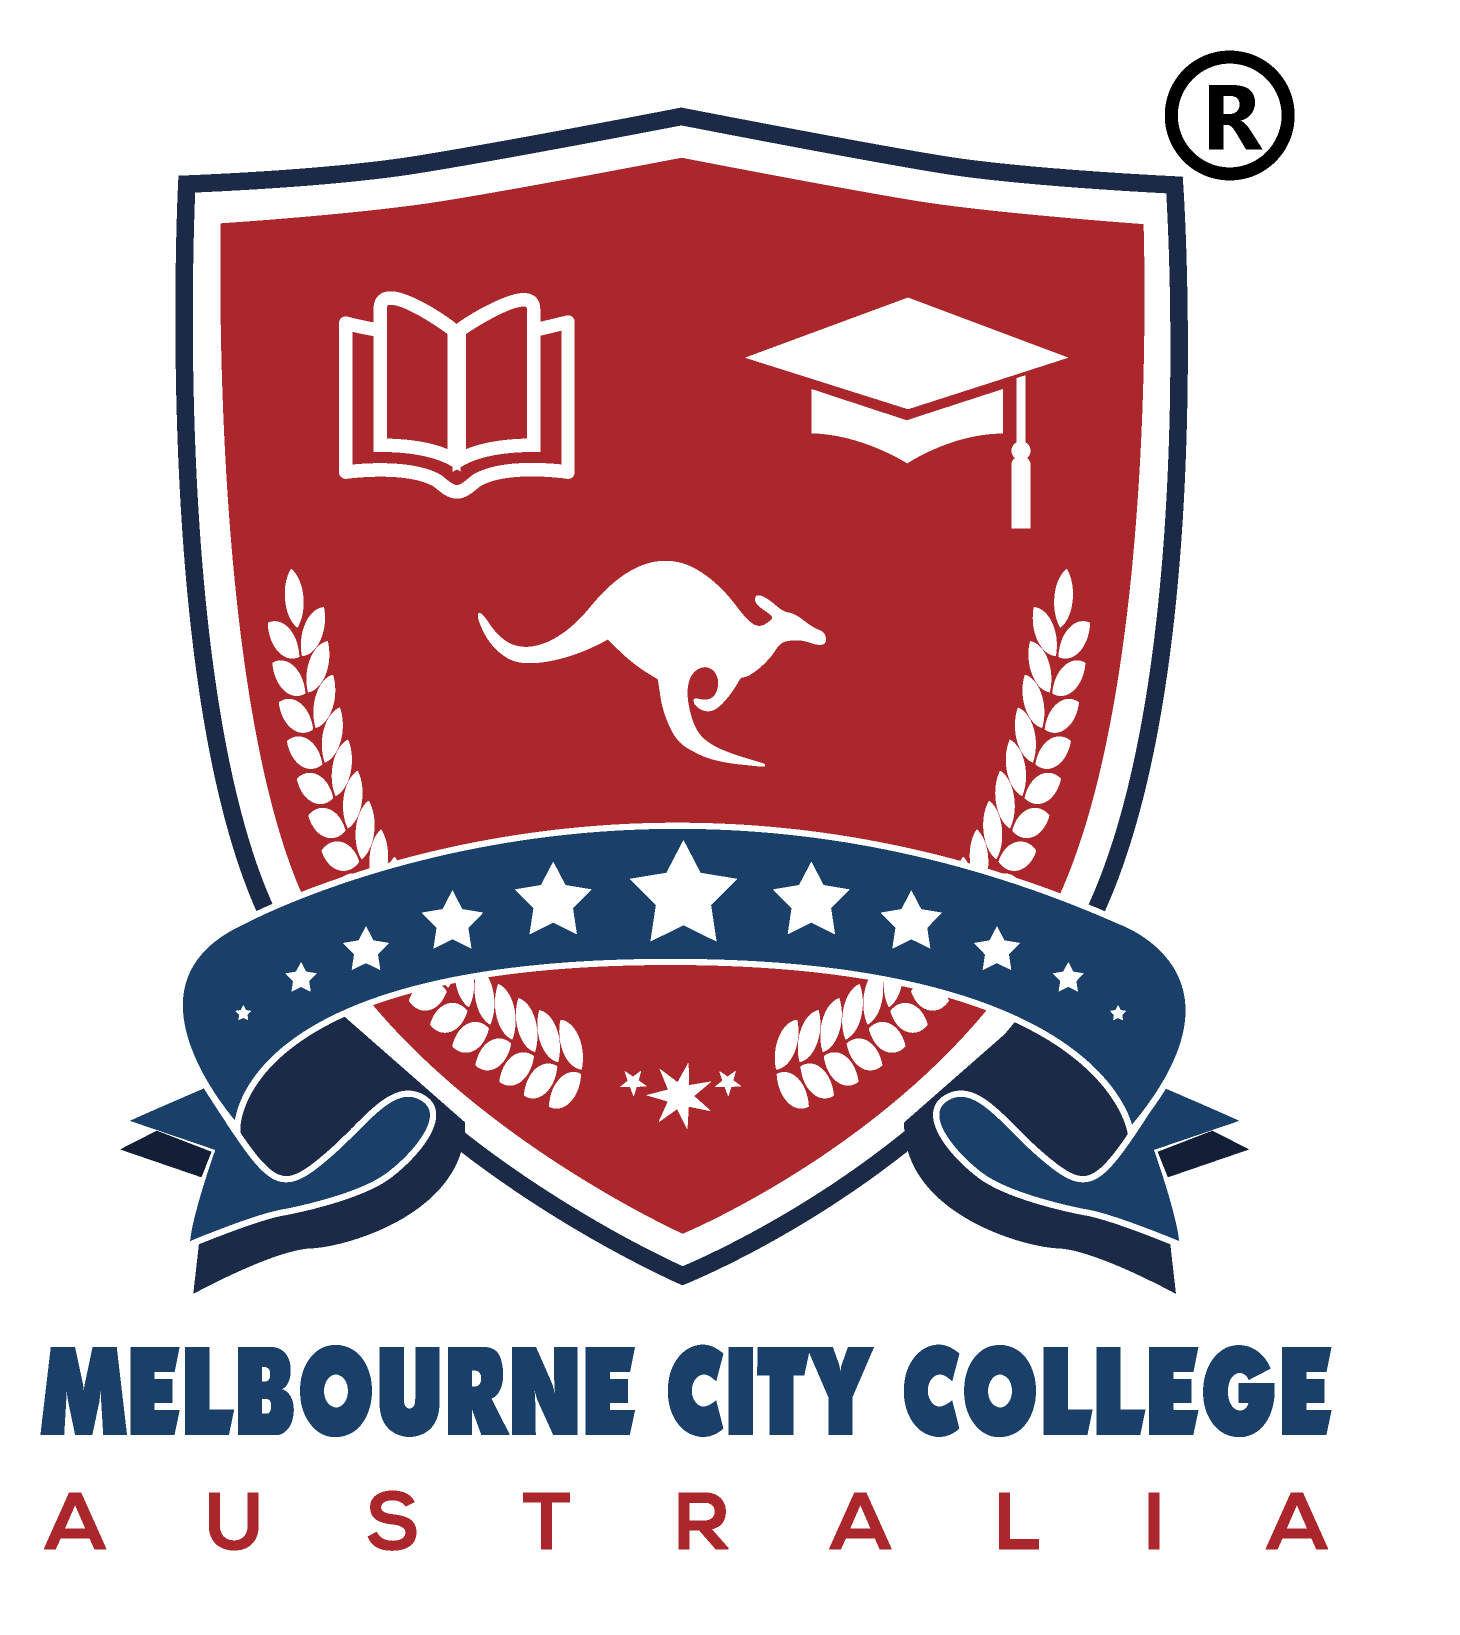 About Melbourne City College Australia